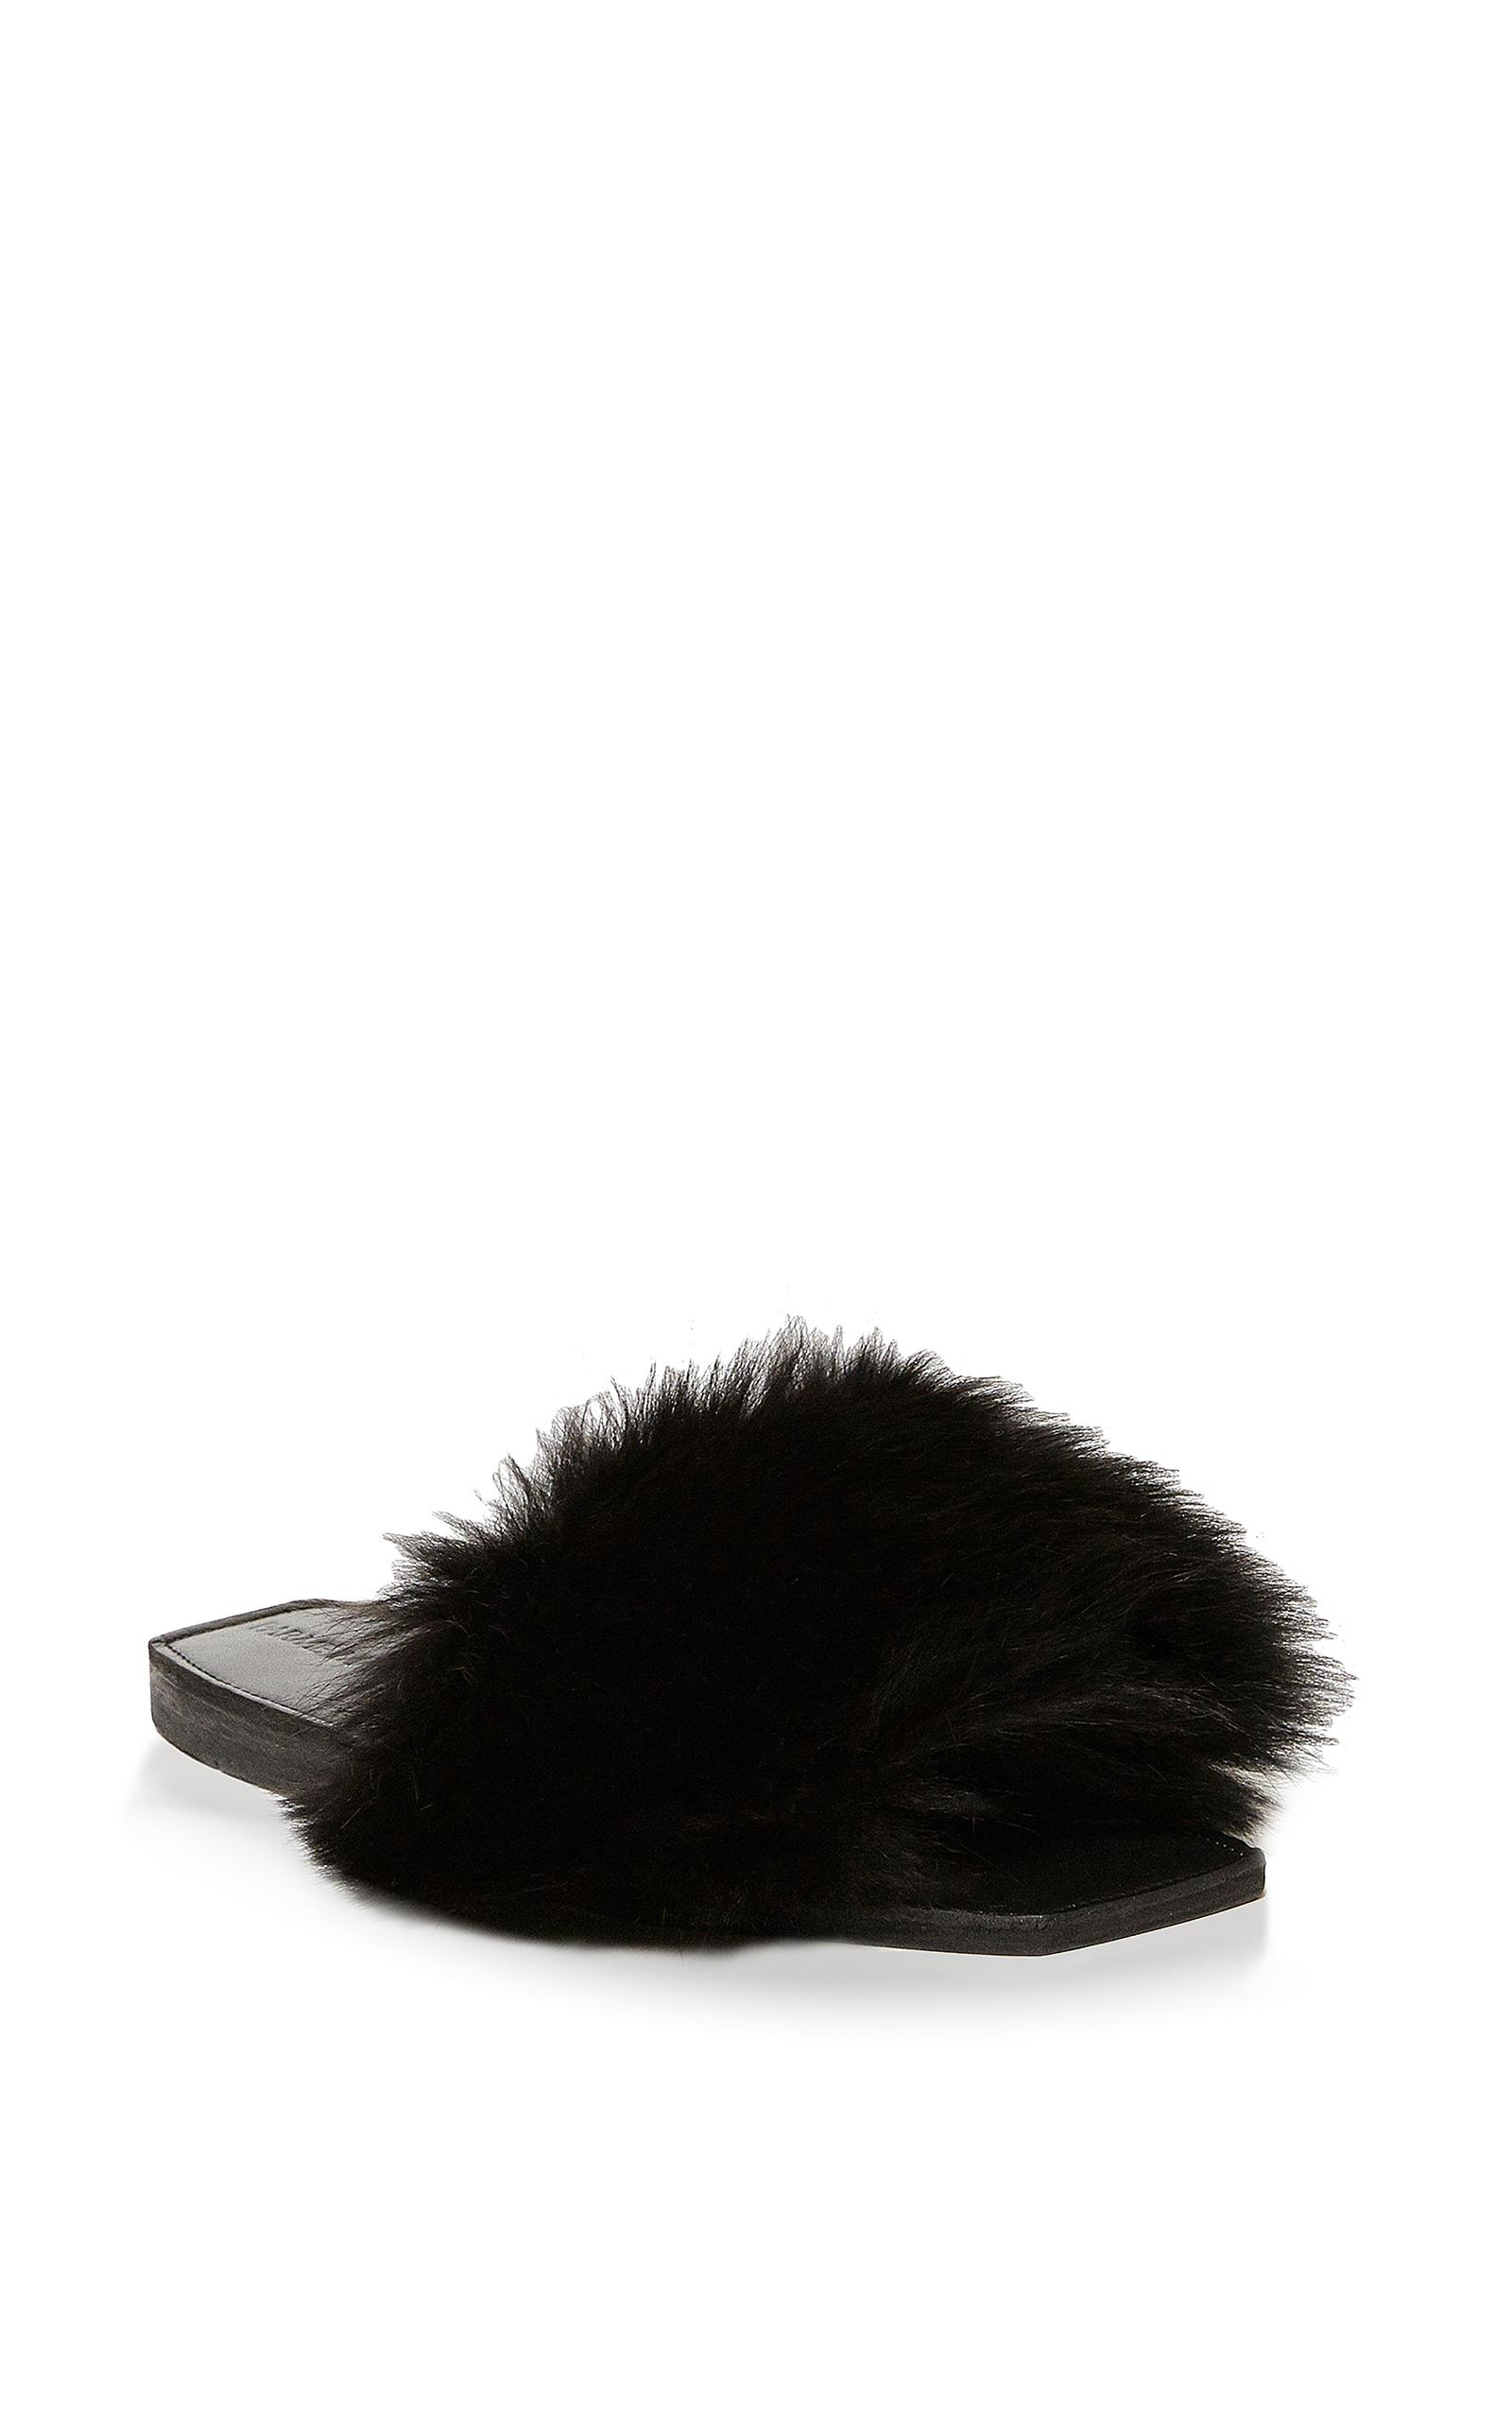 2e8f633d64309 Lyst - Parme Marin Furry Baby Sandals in Black